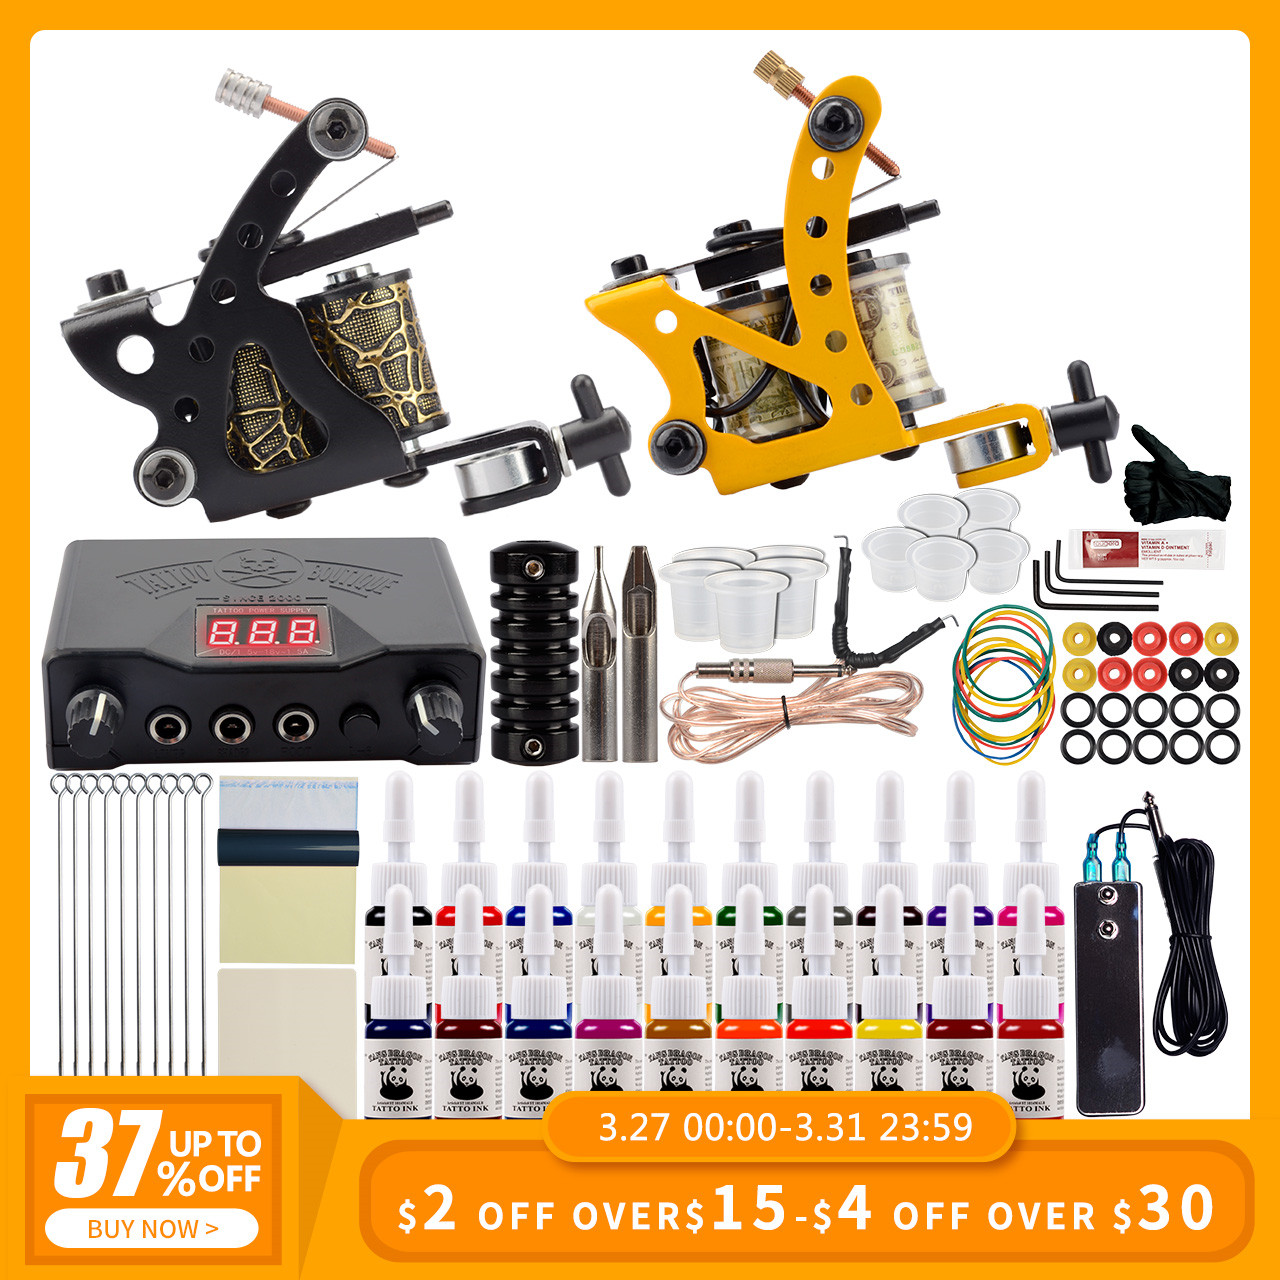 Starter Tattoo Set 2 Coils Guns 20 Colors Pigment Inks Sets Black Power Permanent Makeup Tattoo Kit Tattoo Machine Set